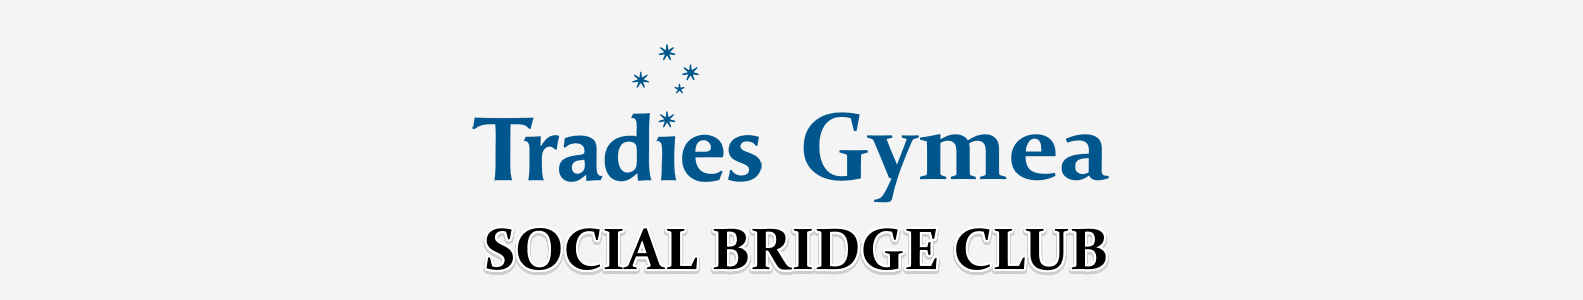 Results from Tradies Gymea games – 2020